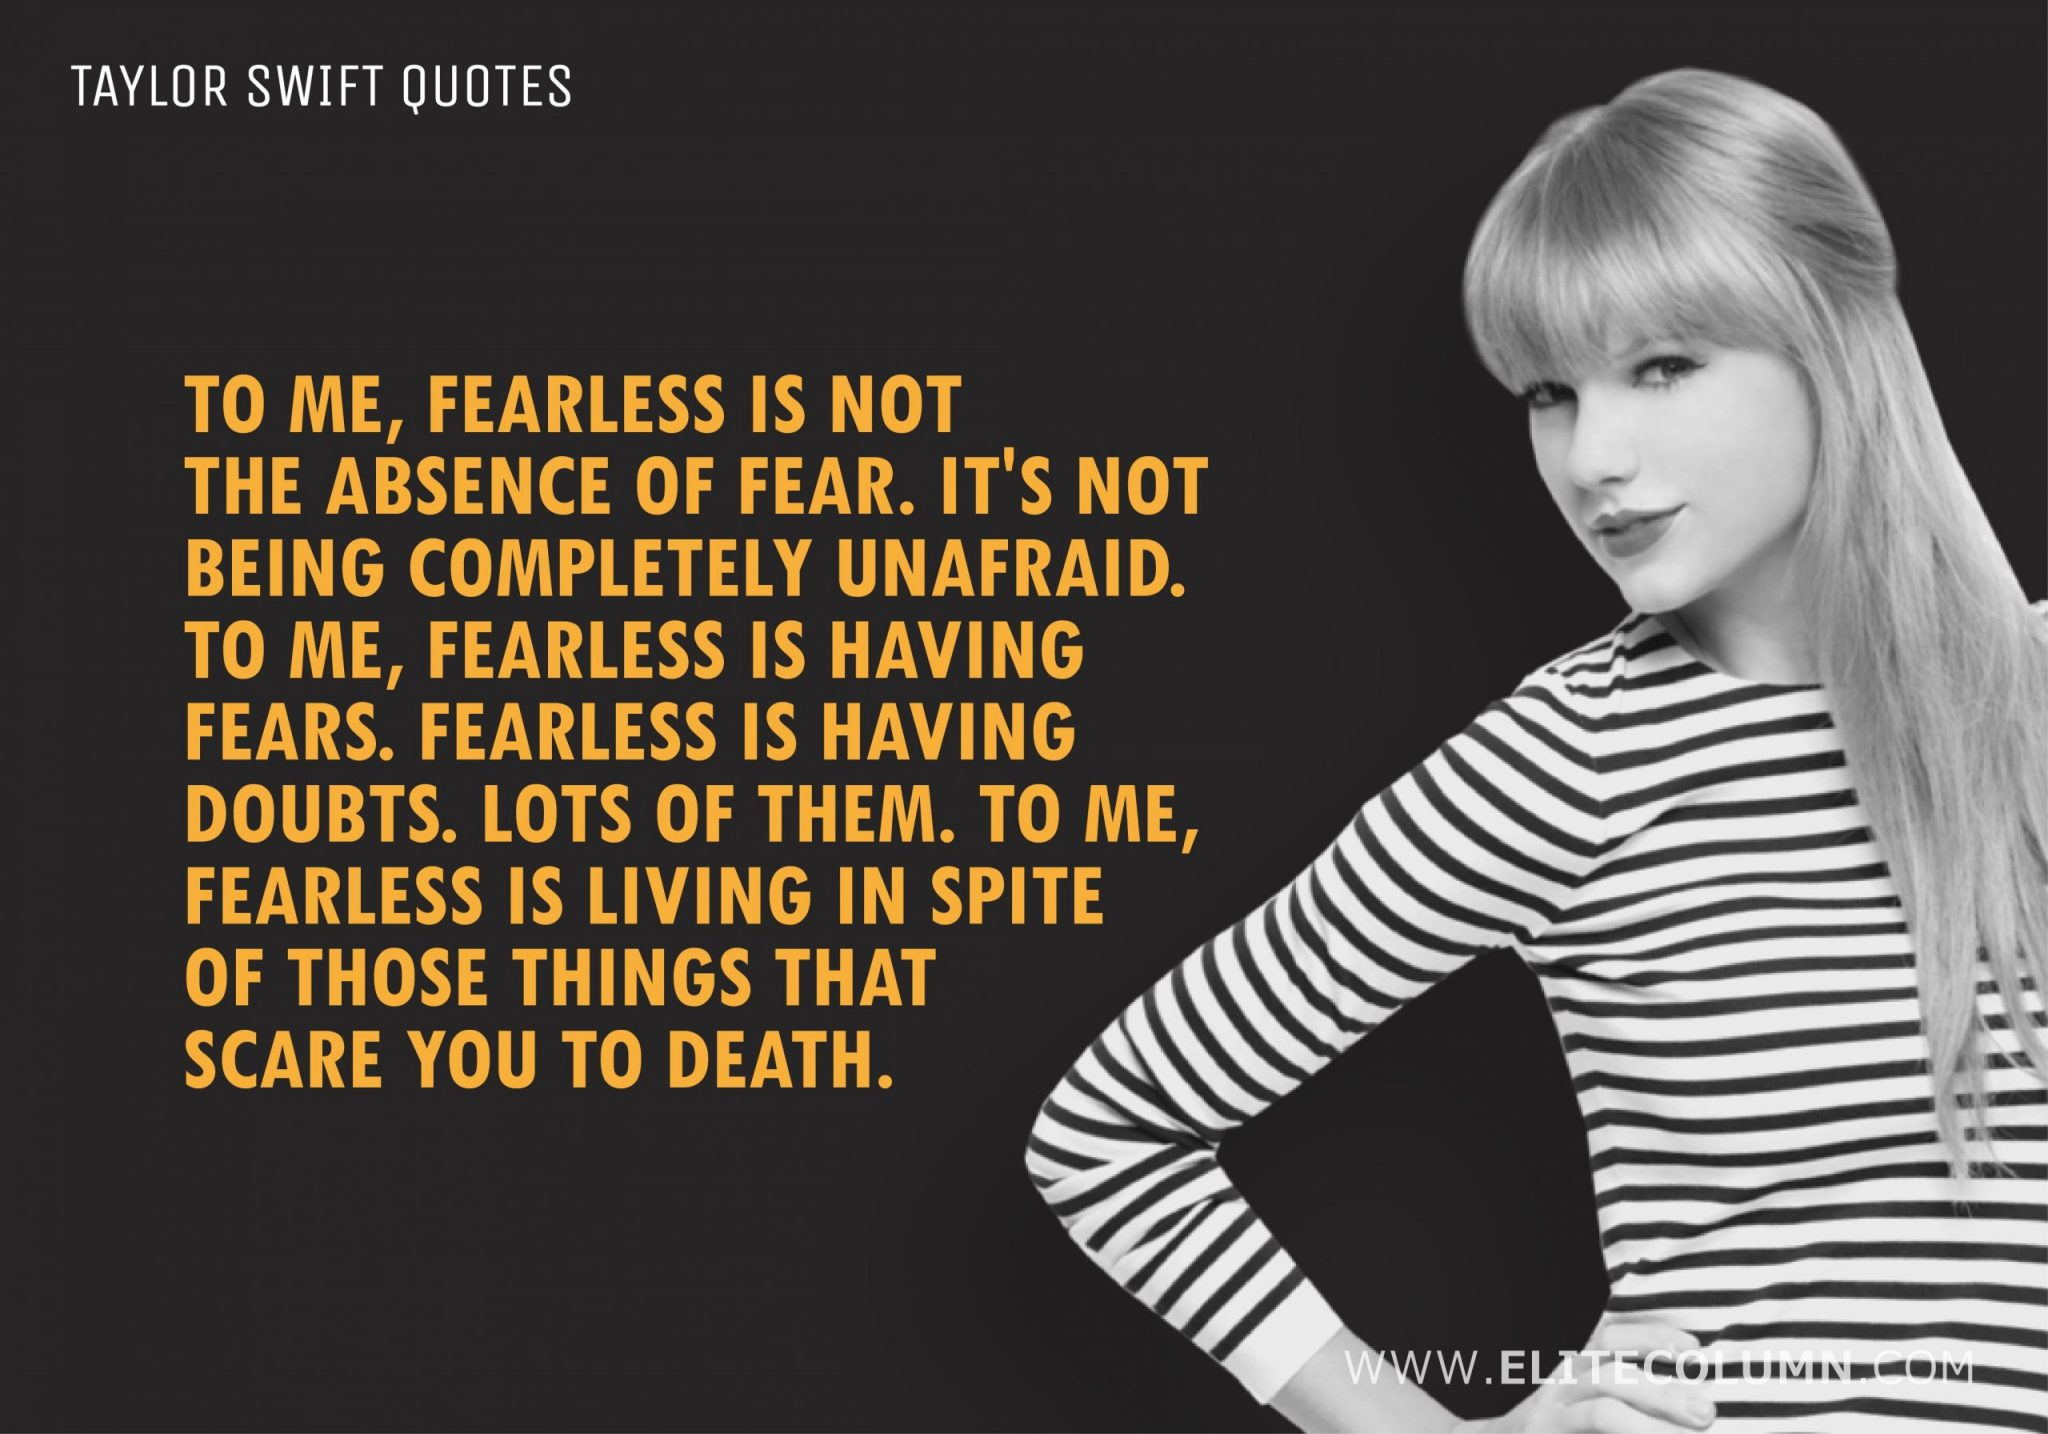 Taylor Swift Quotes (9)